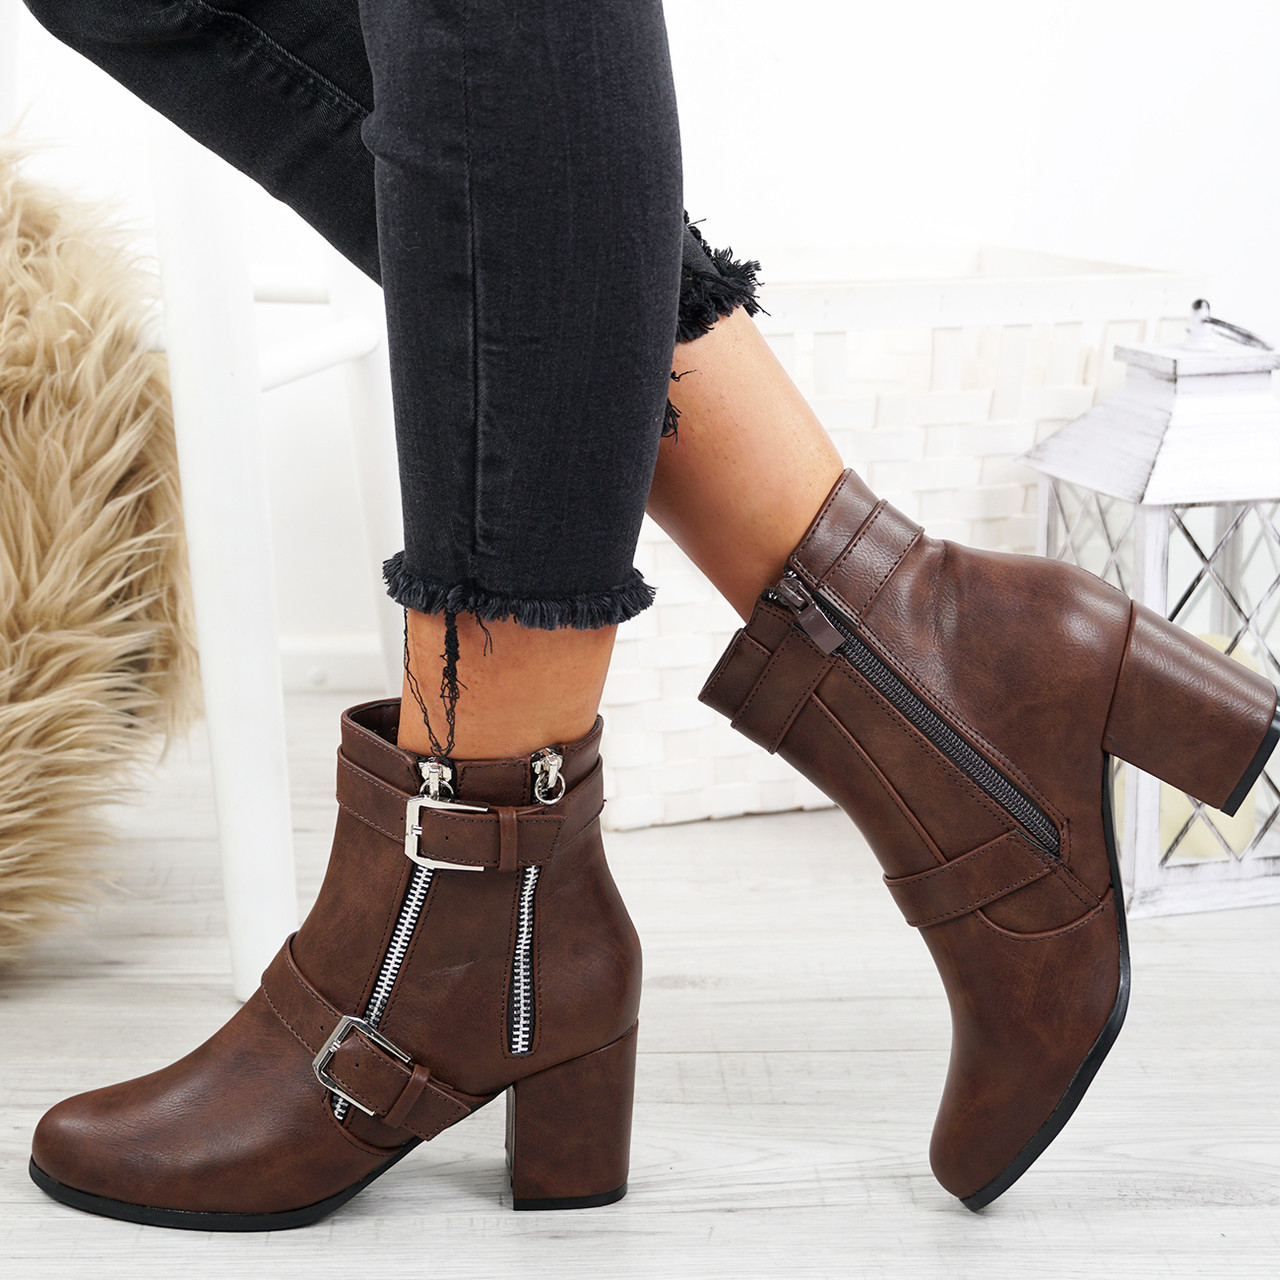 a32840b00c2 Womens Ladies Block Heel Ankle Boots Buckle Double Zip Casual Shoes Size